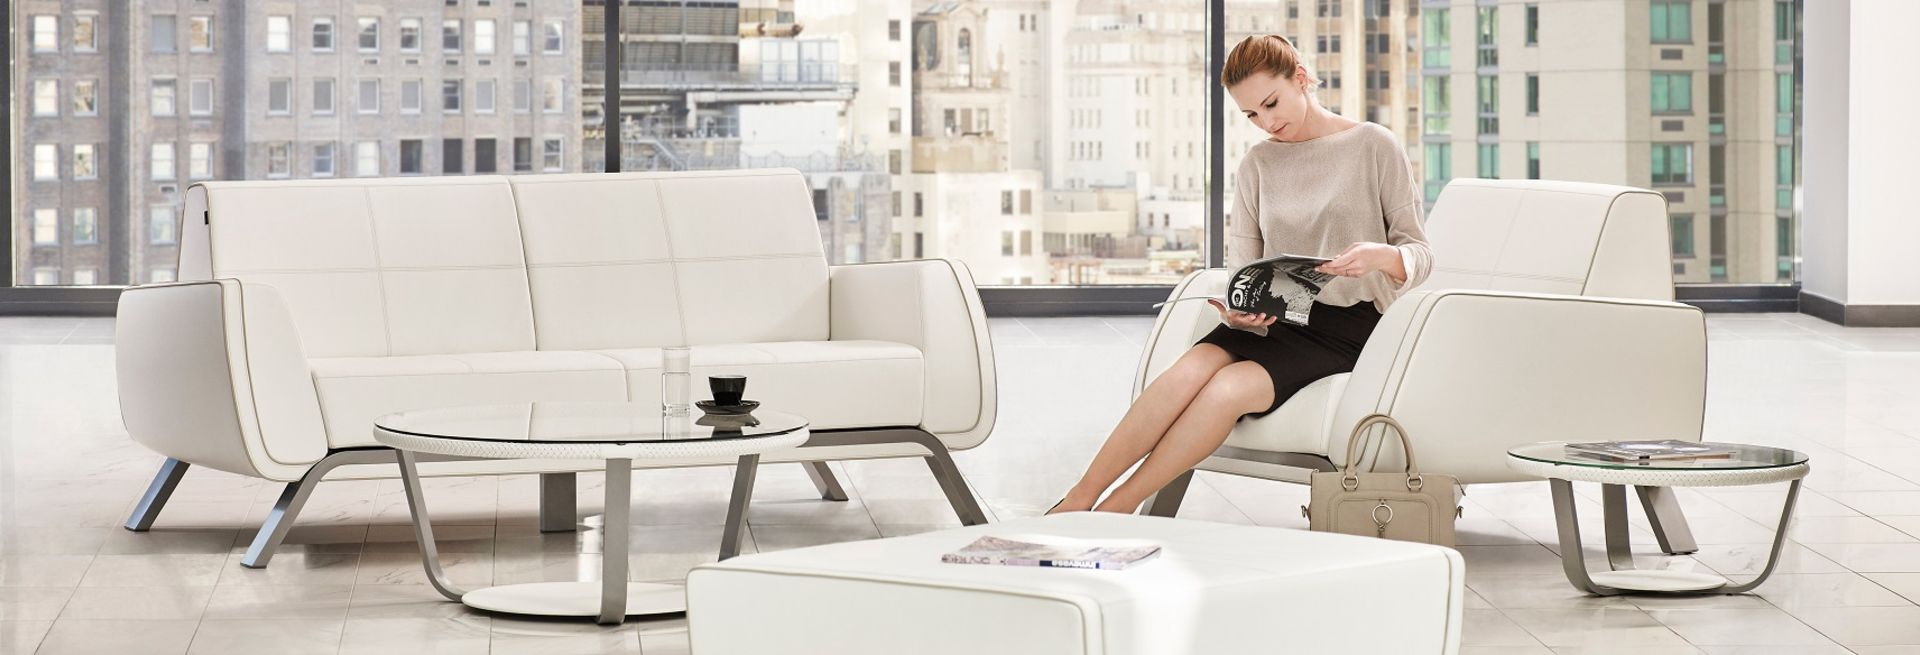 Genial Armchair : Boxmark XTREME Collection U2013 Exclusive Leather Furniture For  Interior And Exterior.